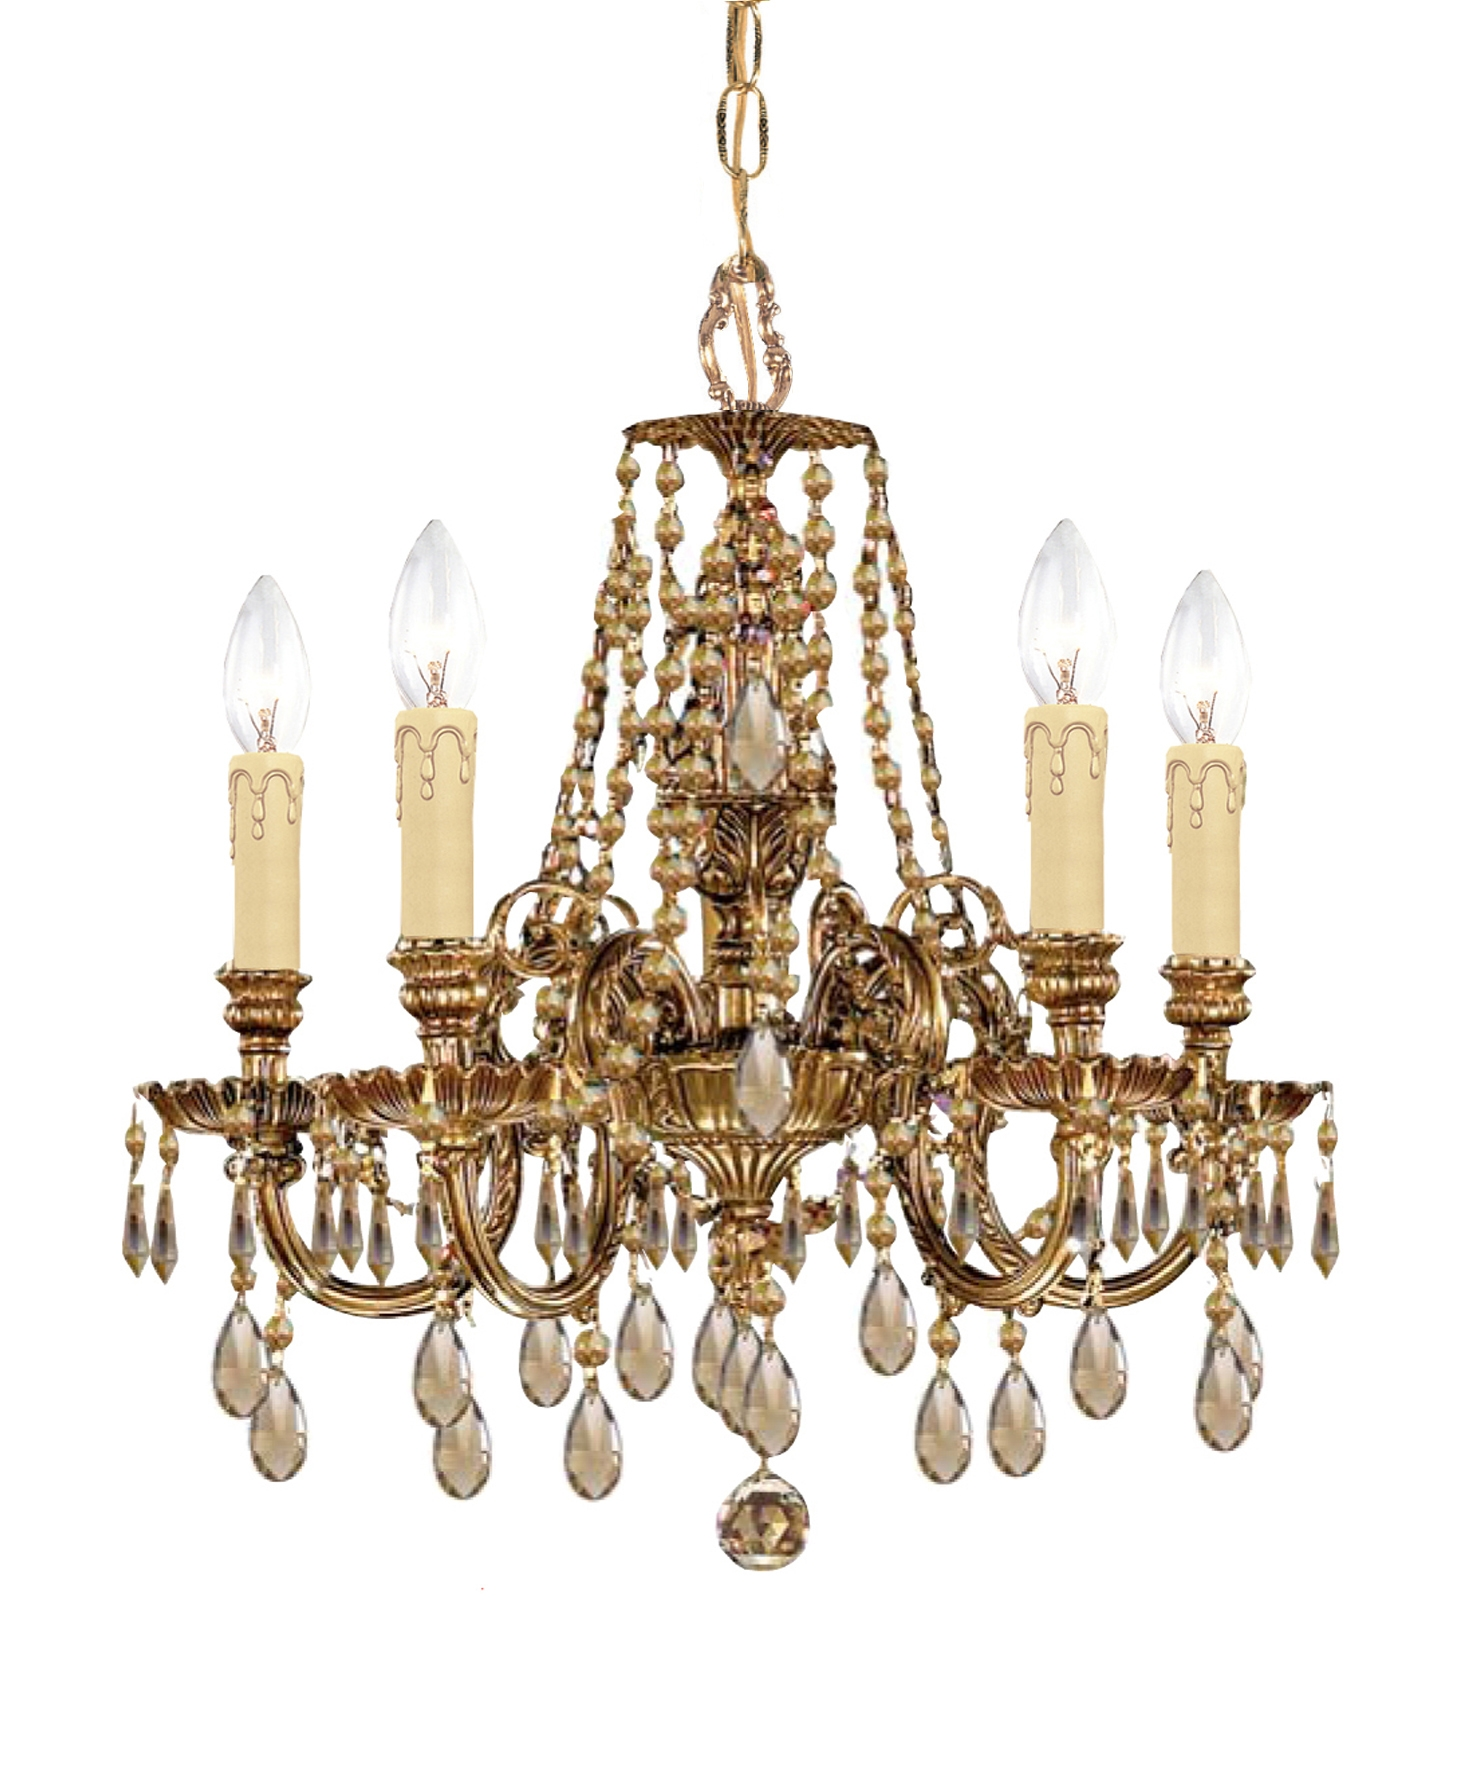 Crystorama 2805 Ob Gt Mwp Mini Chandeliers Novella With Regard To Ornate Chandeliers (Image 6 of 15)